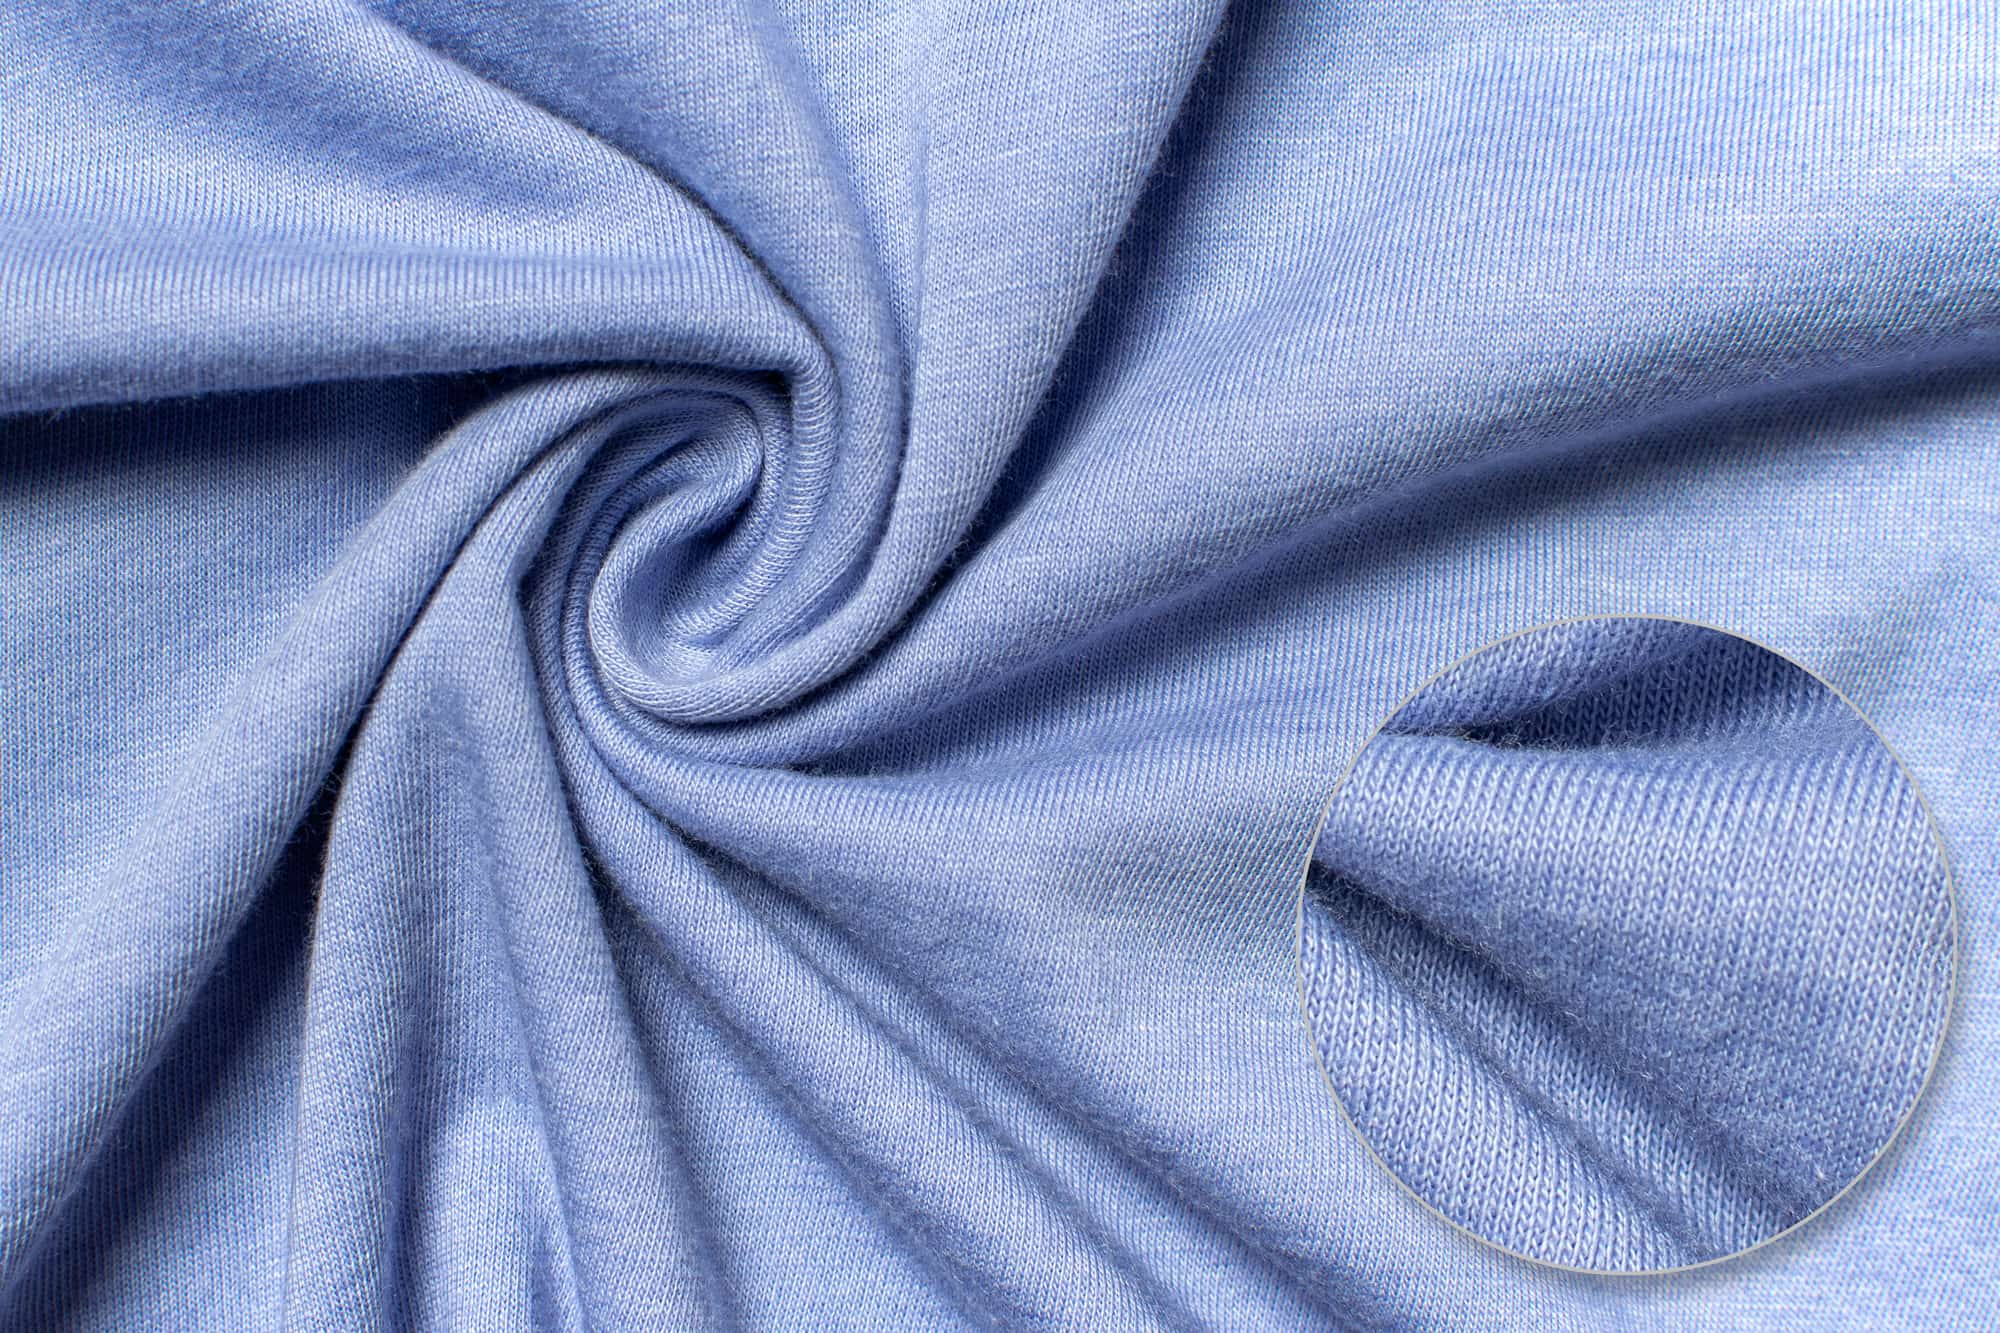 Fabric detail of the Bella Canvas Jersey T-Shirt.